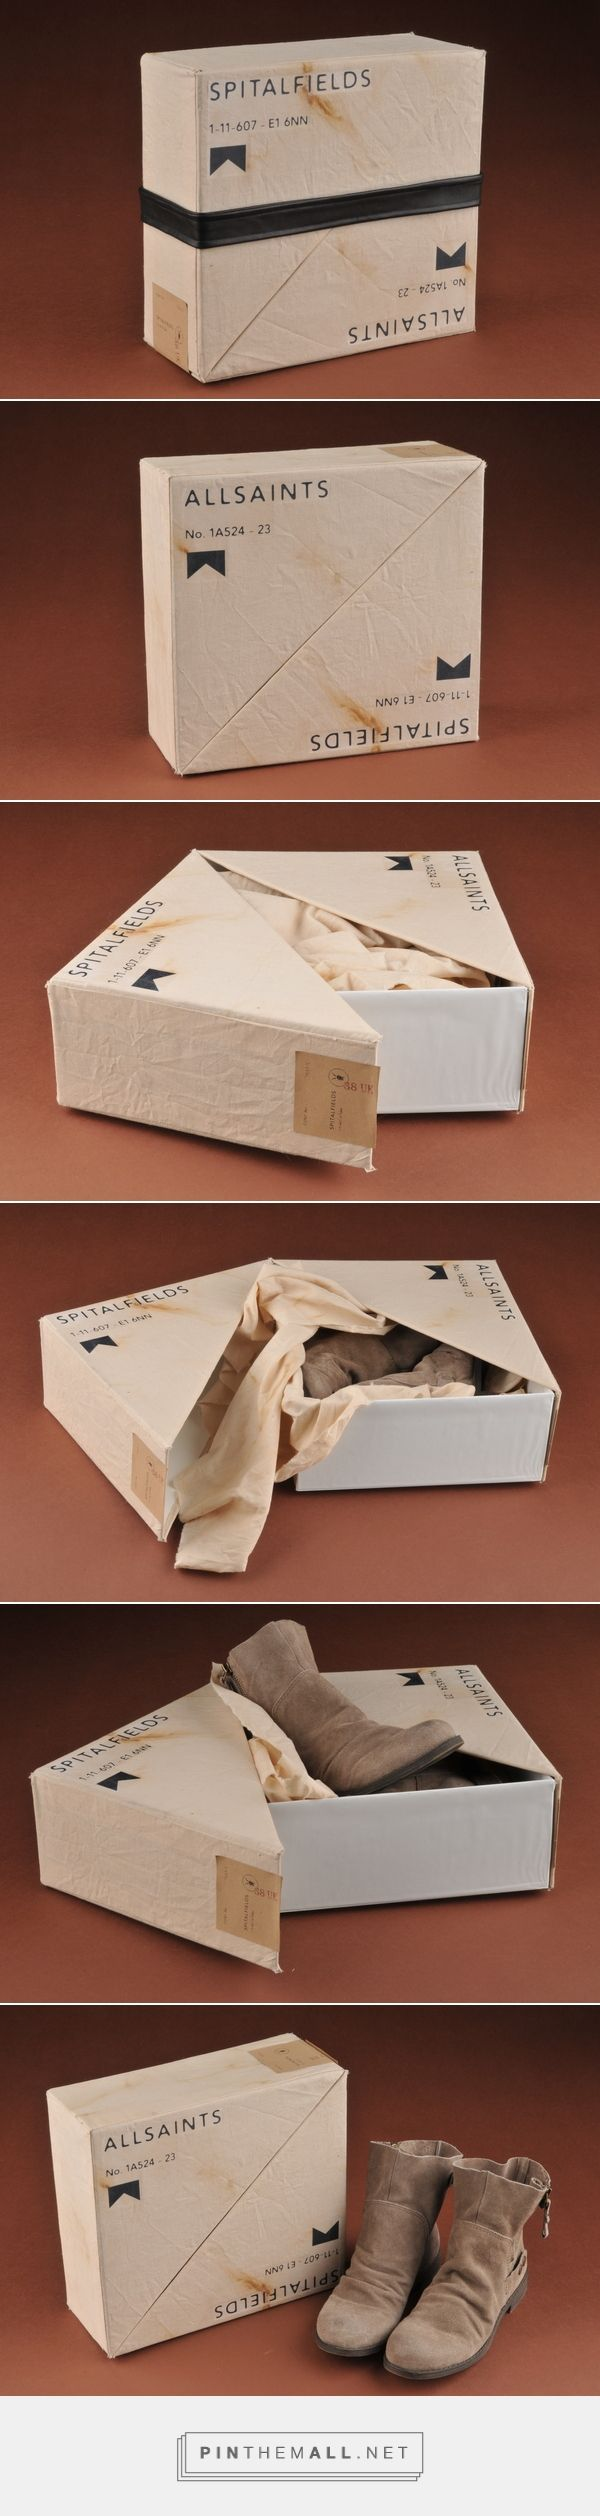 Allsaints Spitalfields shoebox packaging design. I love the diagonal design and how cute are these shoes!!